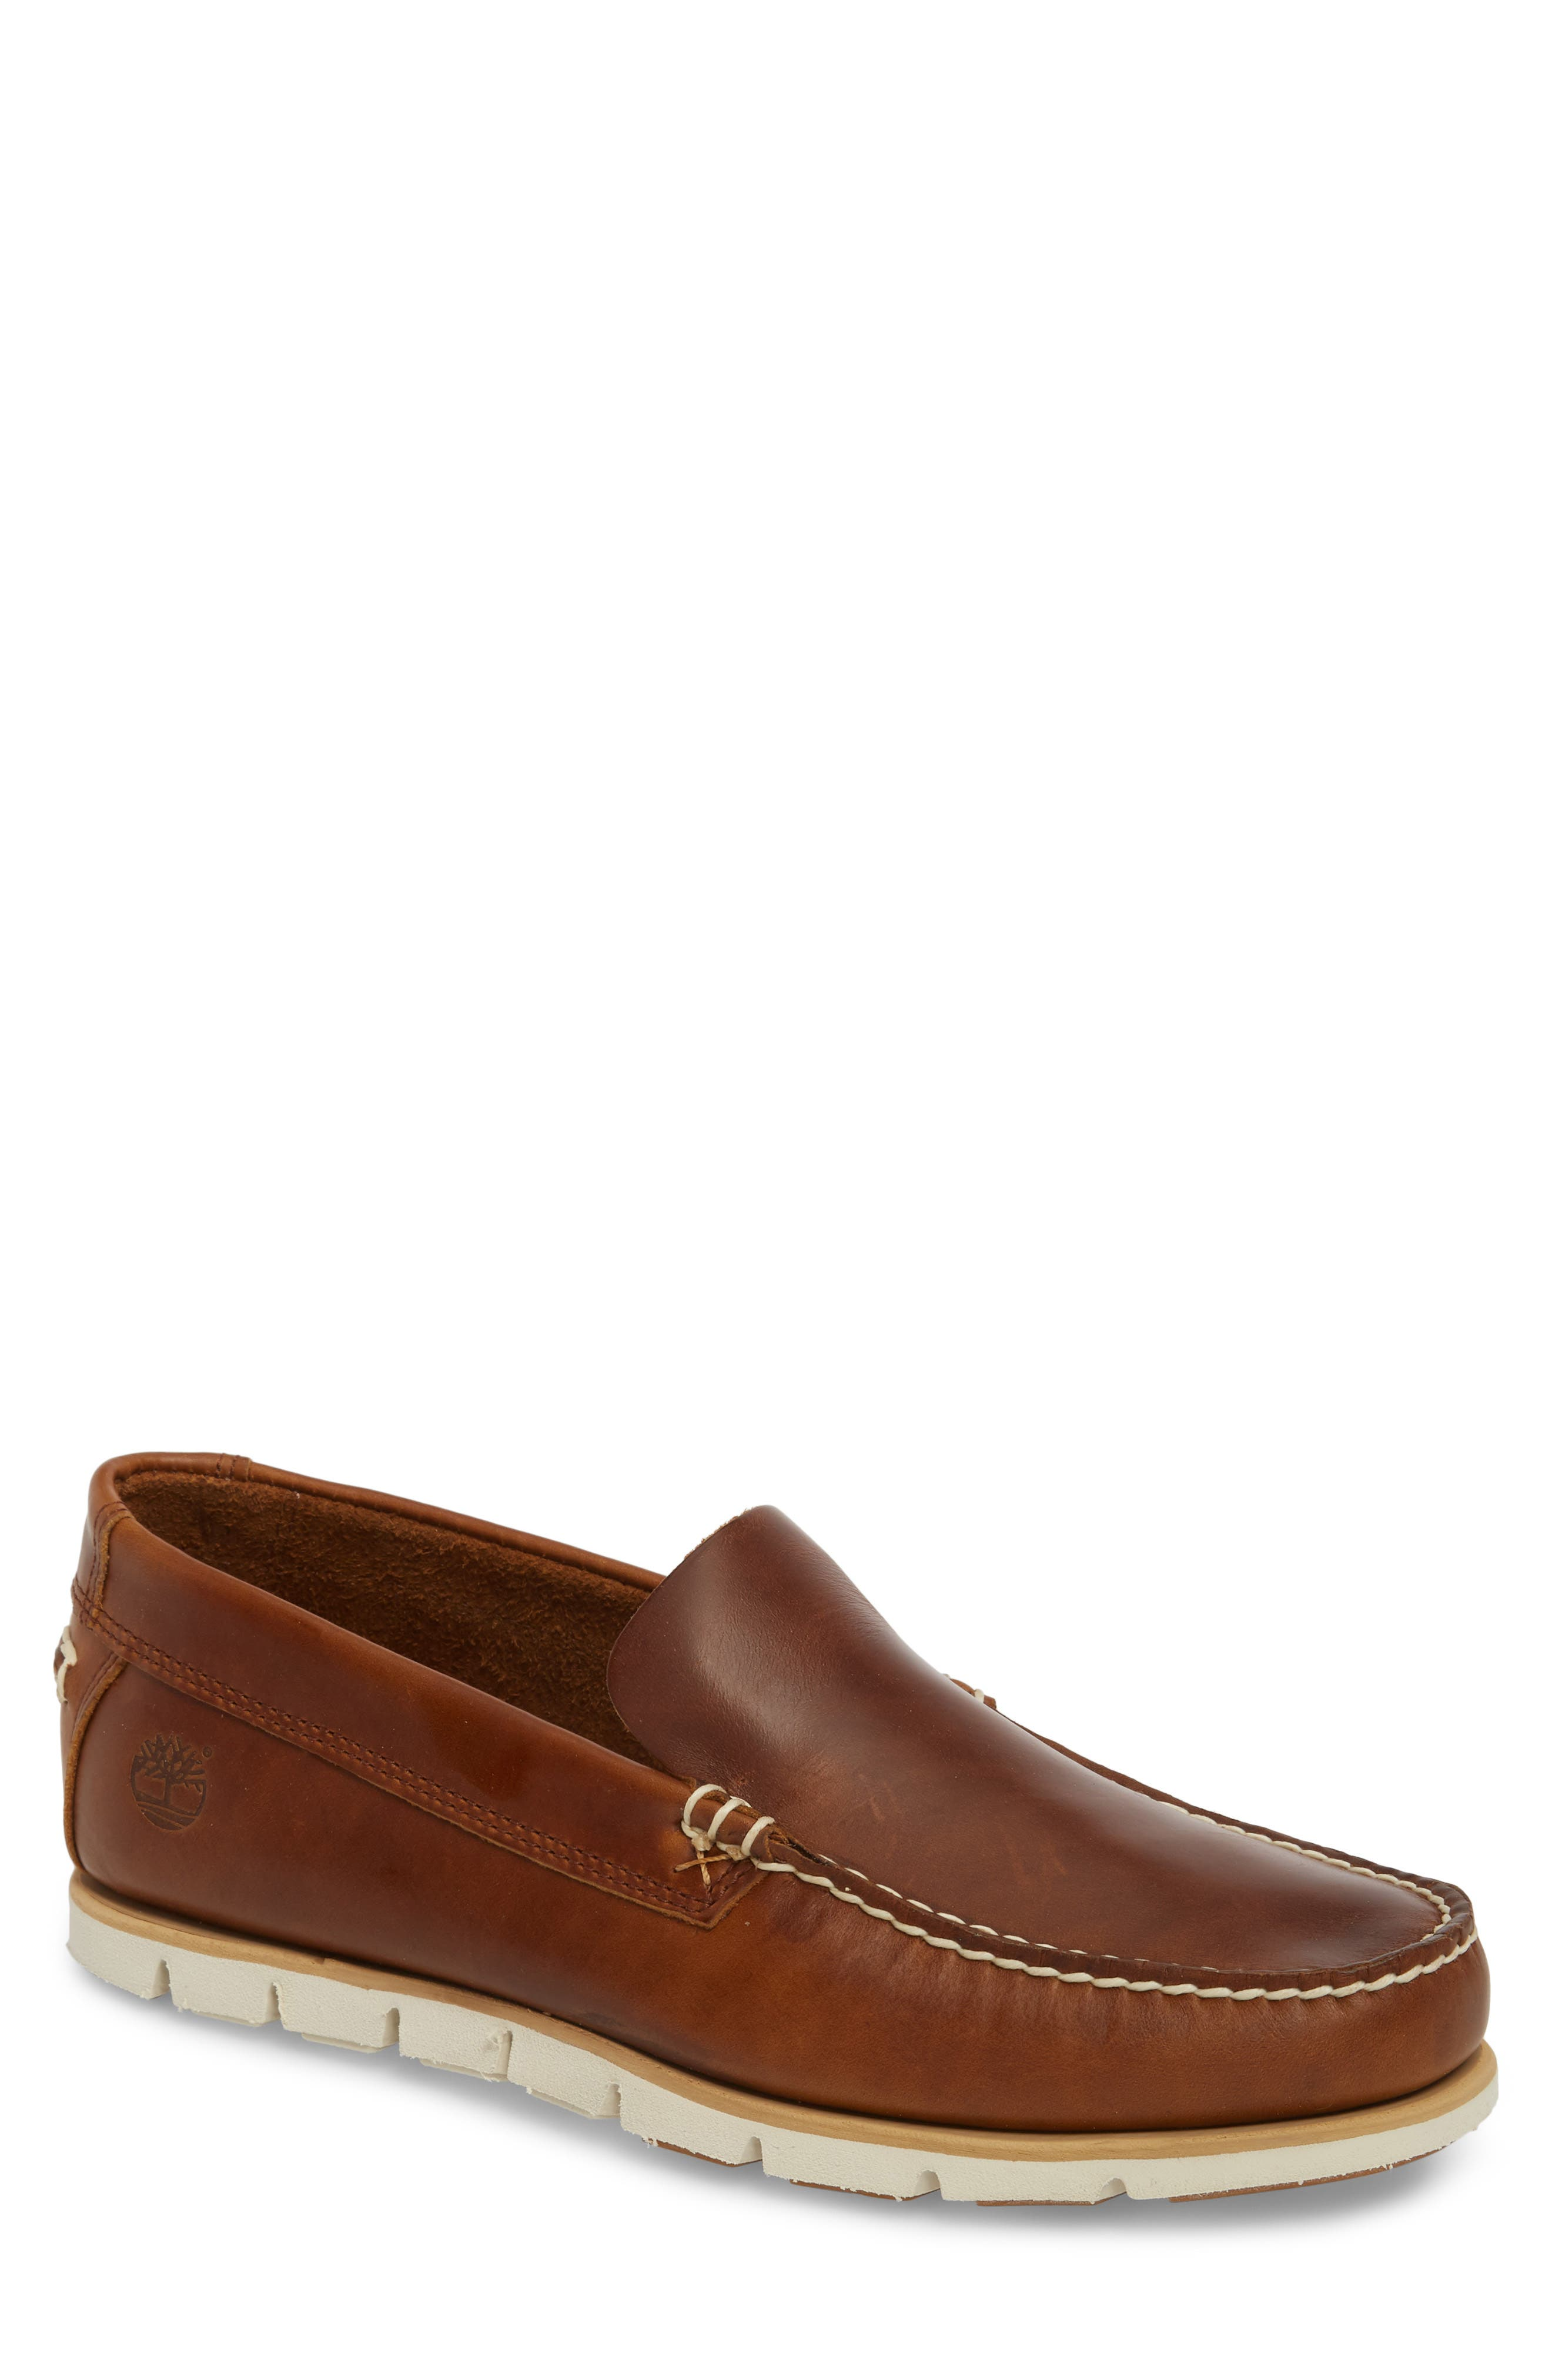 Tidelands Venetian Loafer,                         Main,                         color,